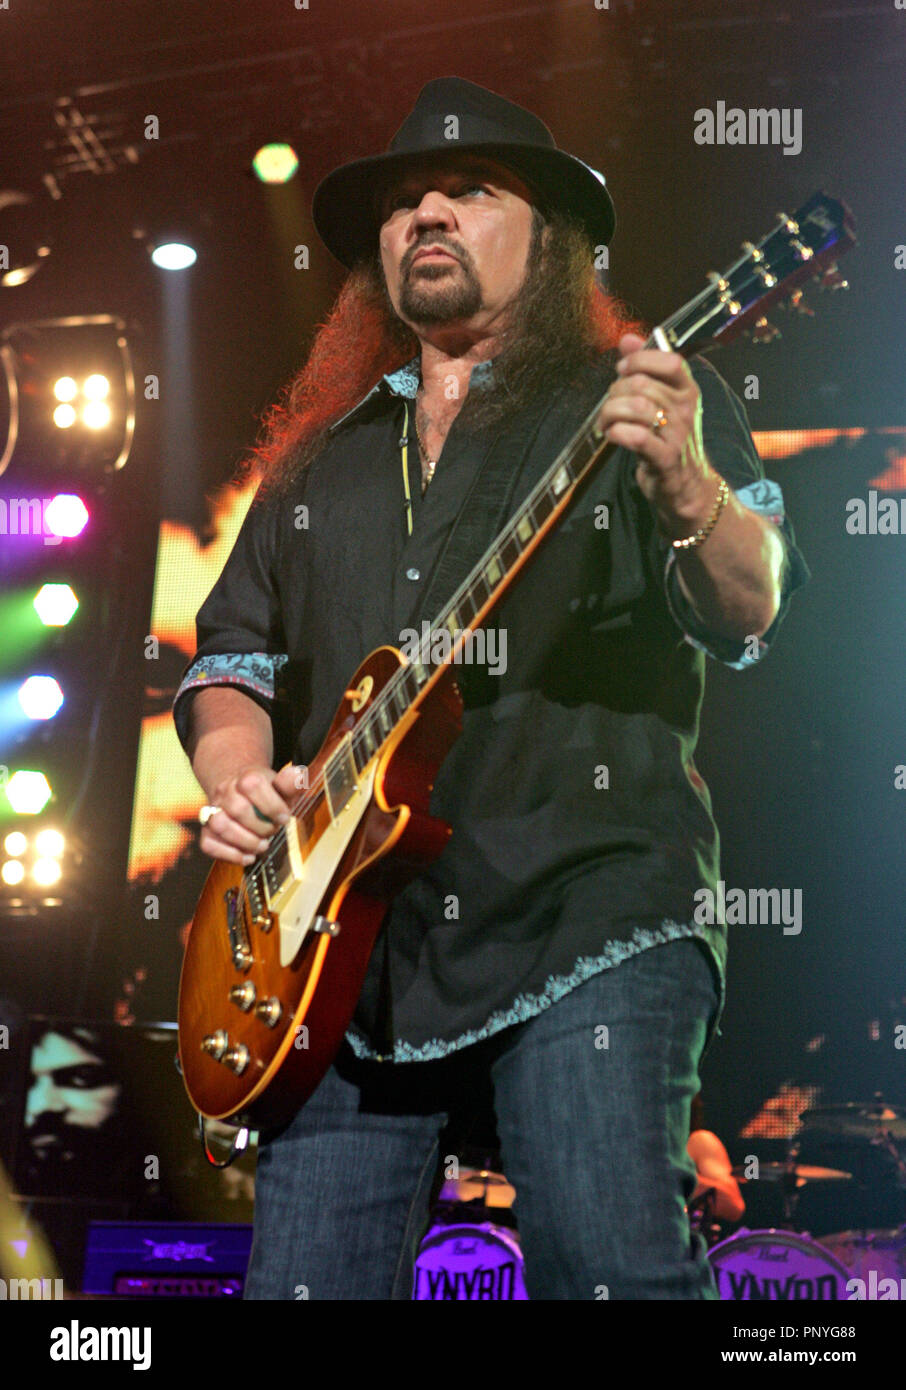 Gary Rossington with Lynyrd Skynyrd performs in concert at the Cruzan Amphitheater in West Palm Beach, Florida on June 10, 2010. Stock Photo